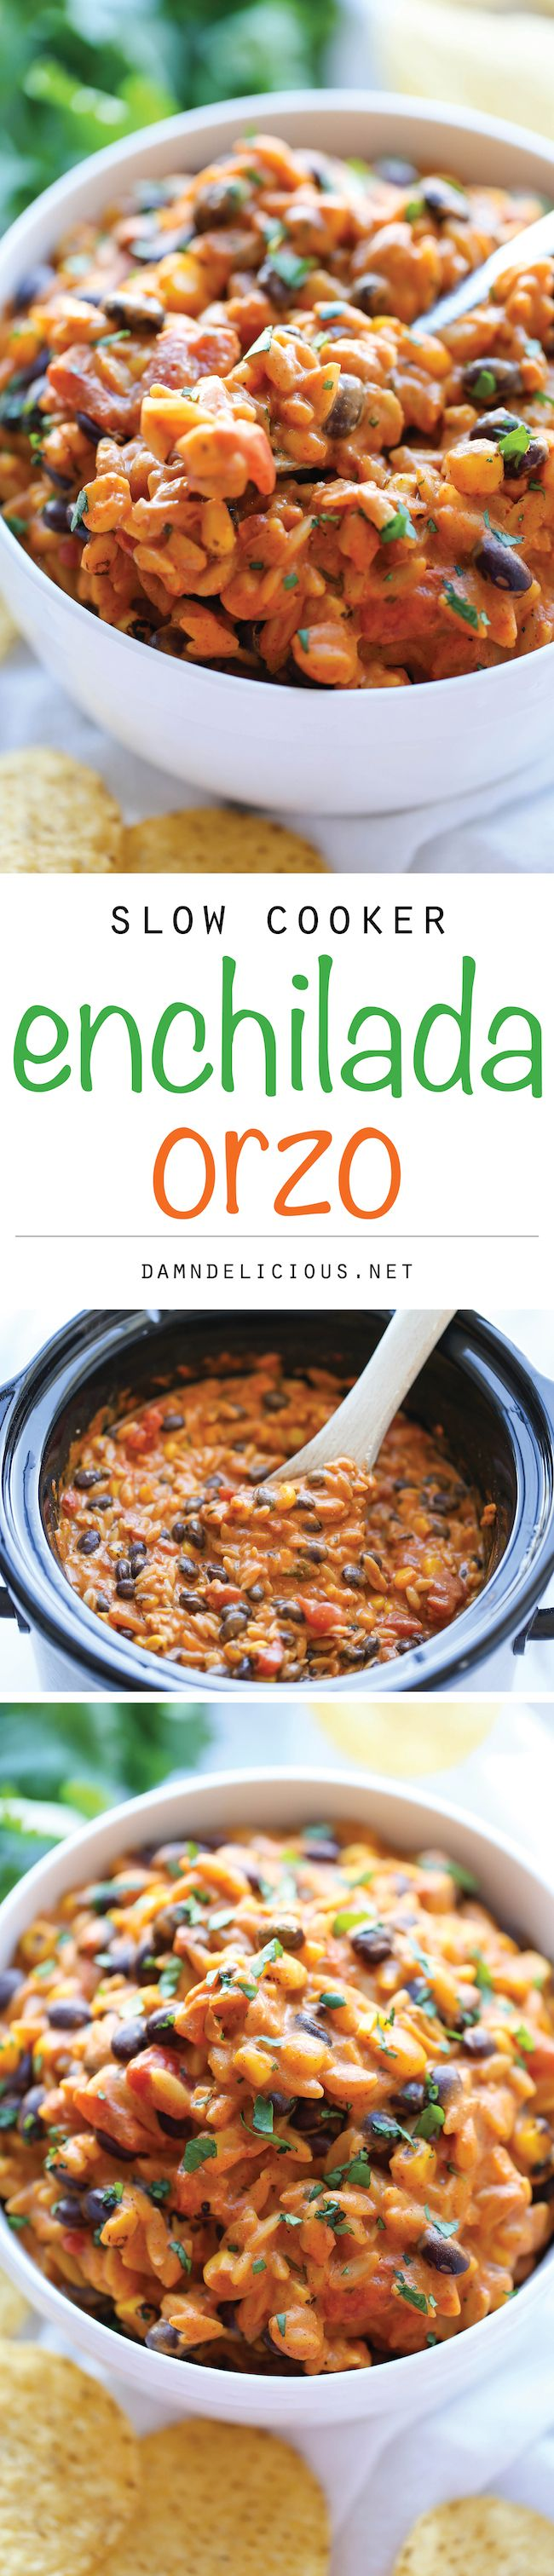 Slow Cooker Enchilada Orzo - The easiest, creamiest enchilada pasta ever. Even the pasta gets cooked right in the crockpot!